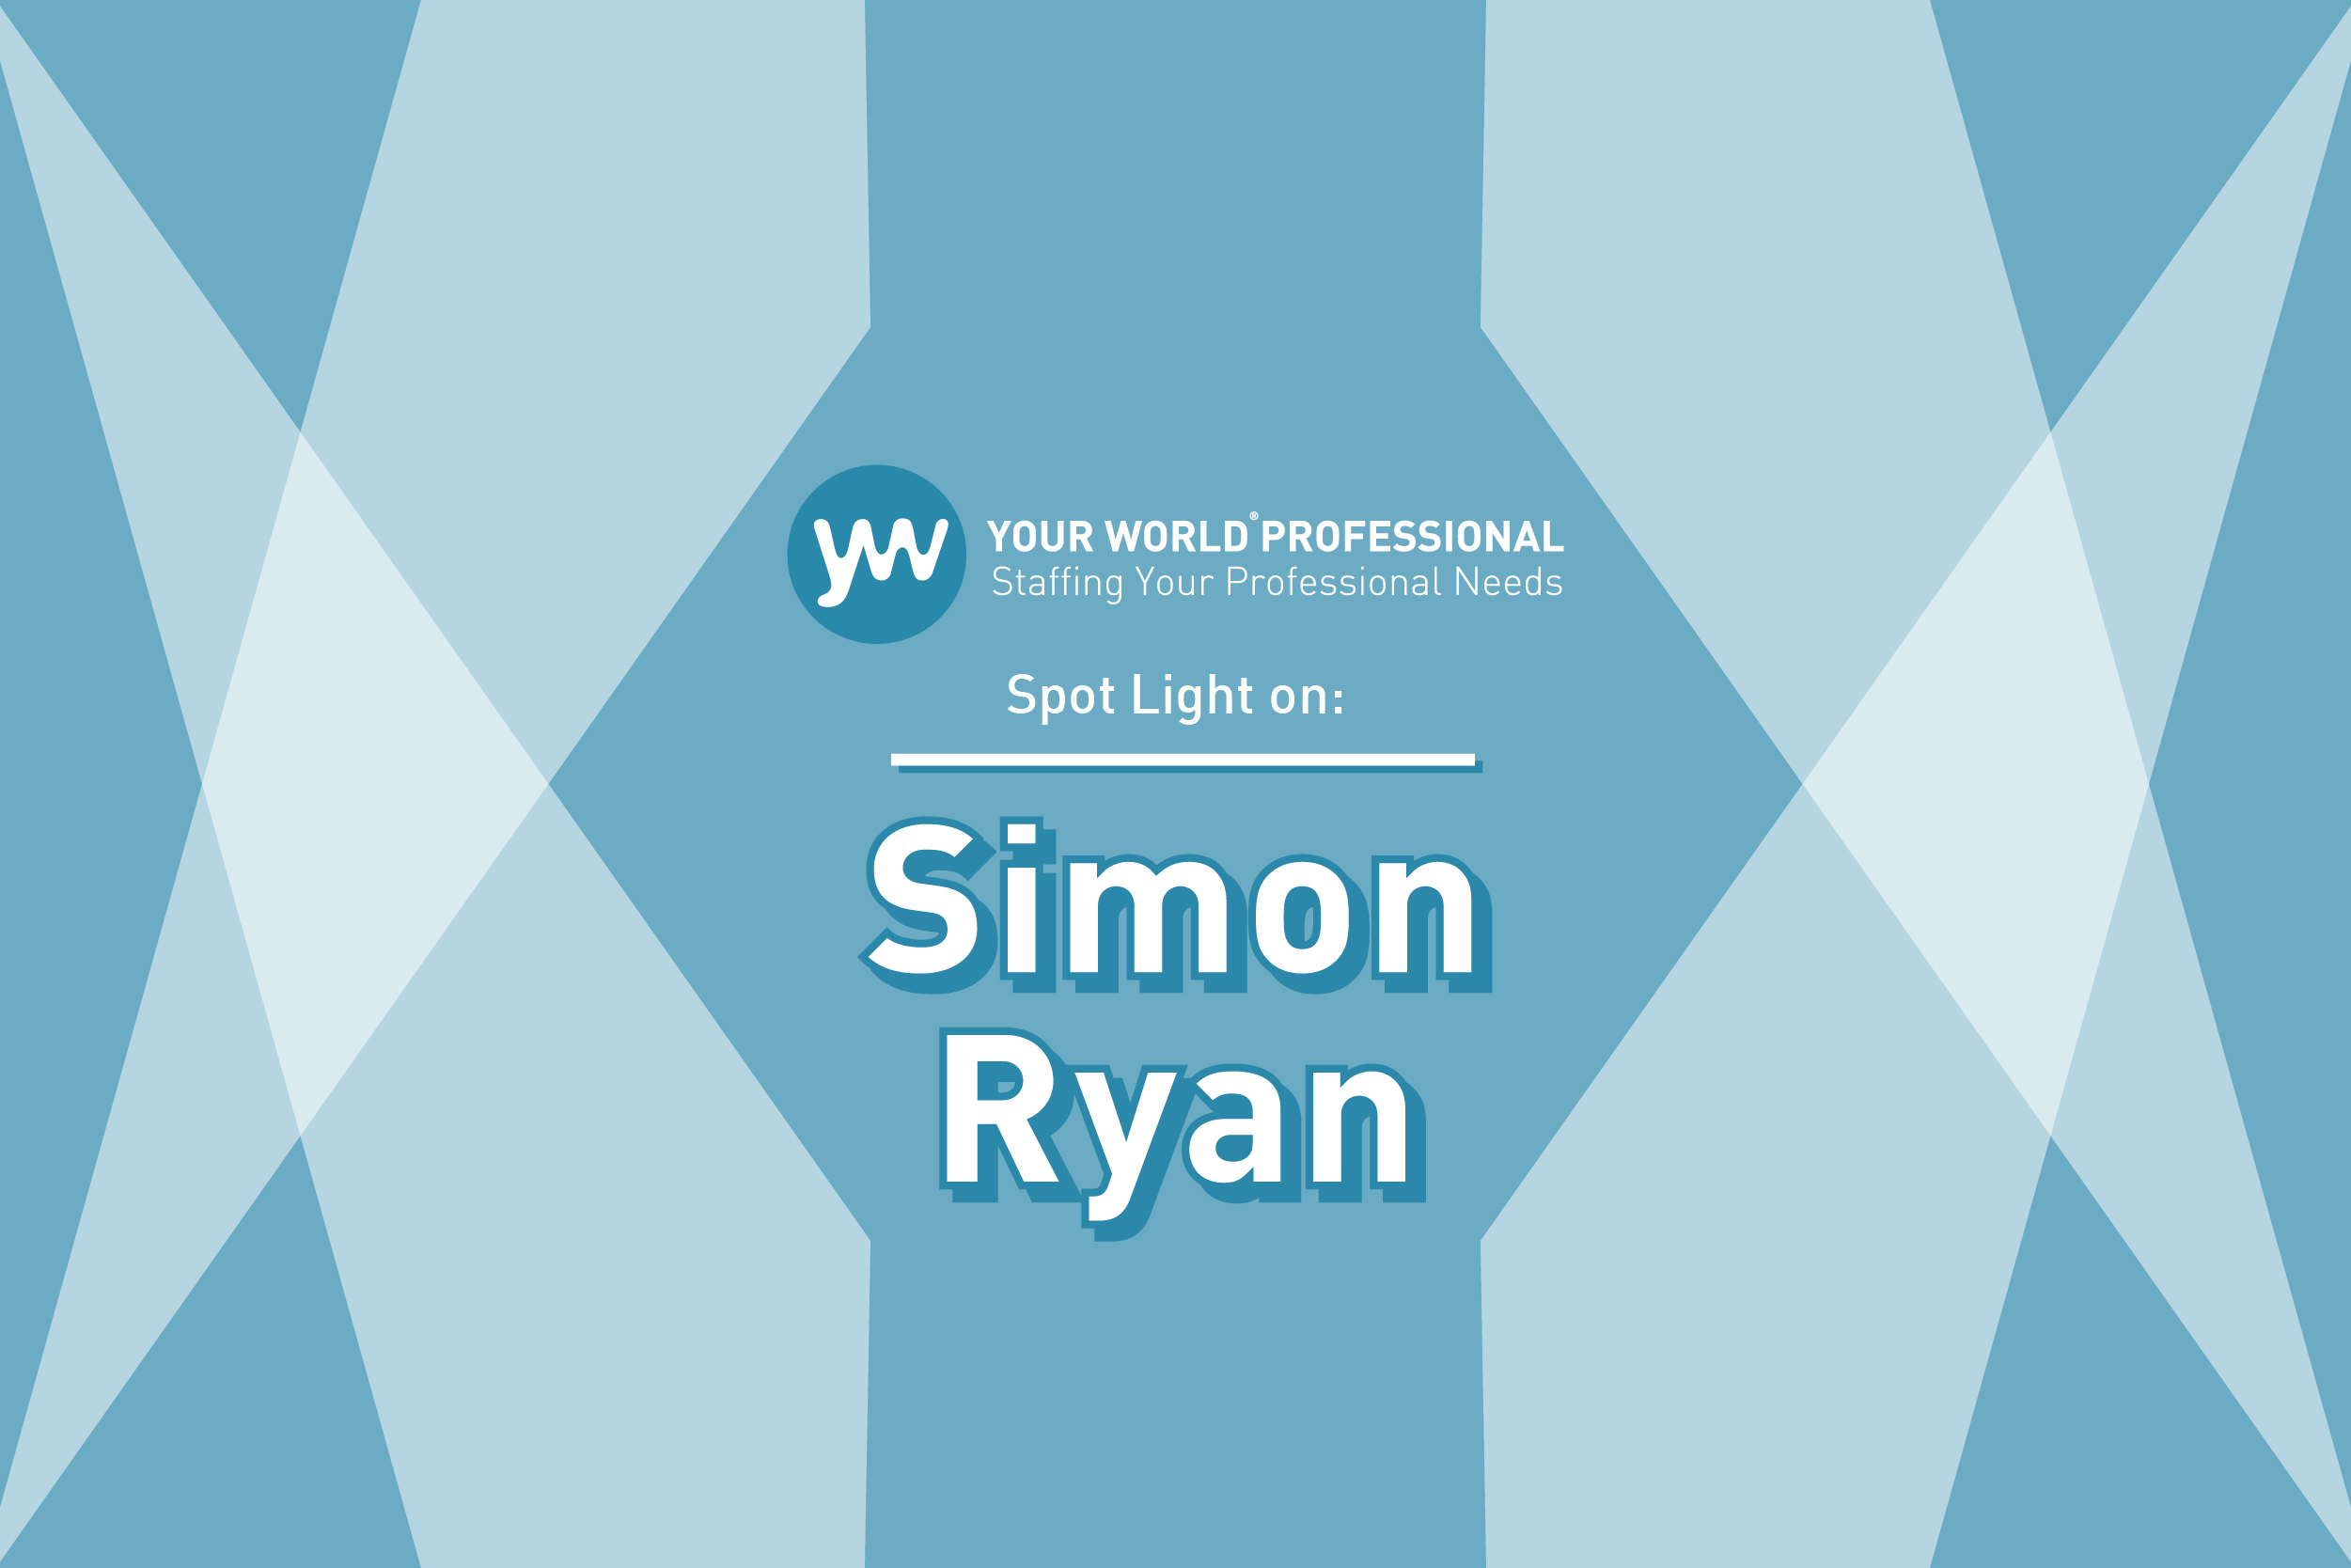 SPOTLIGHT ON...Simon Ryan